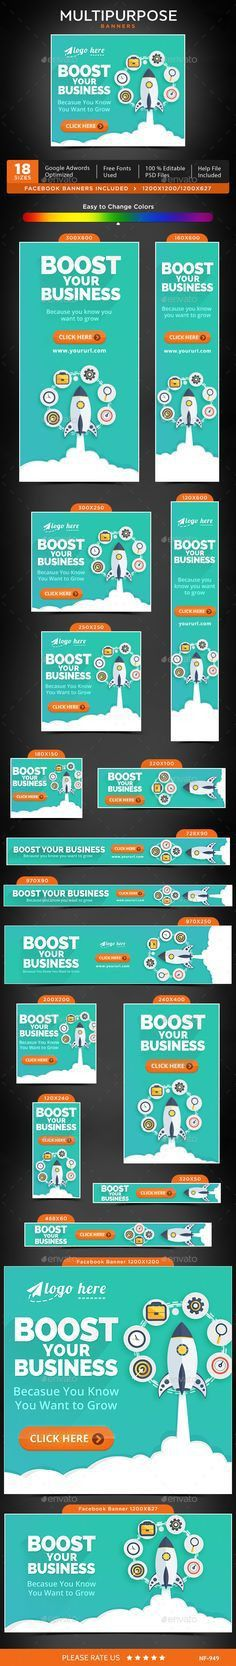 Phone Deals Banner Ad Template PSD | Buy and Download: http ...